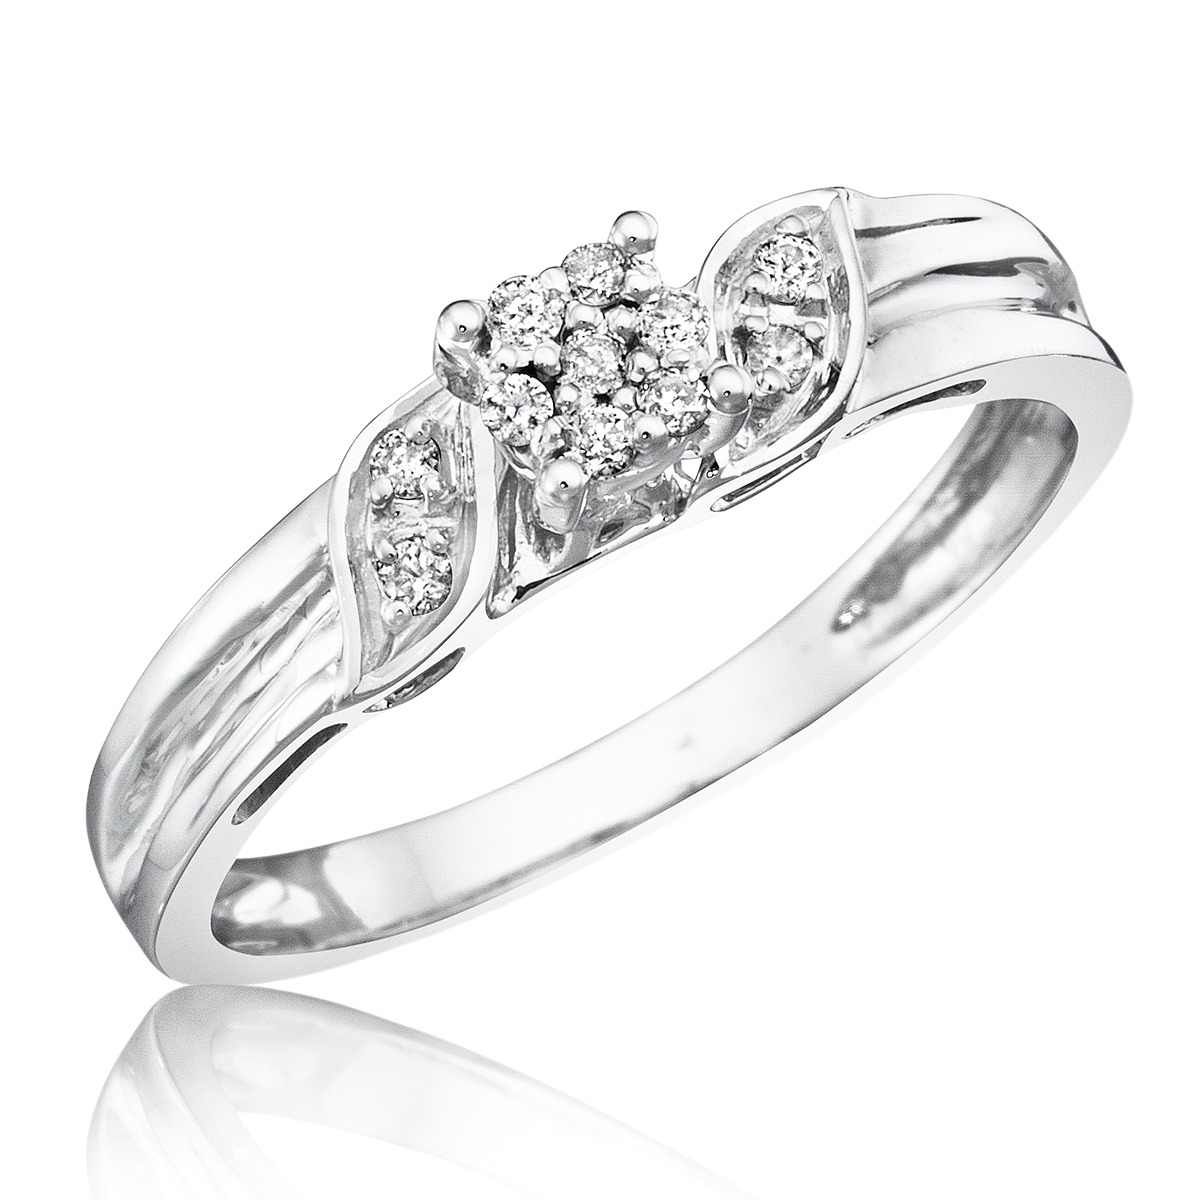 White Gold Engagement Rings For Women | White Gold